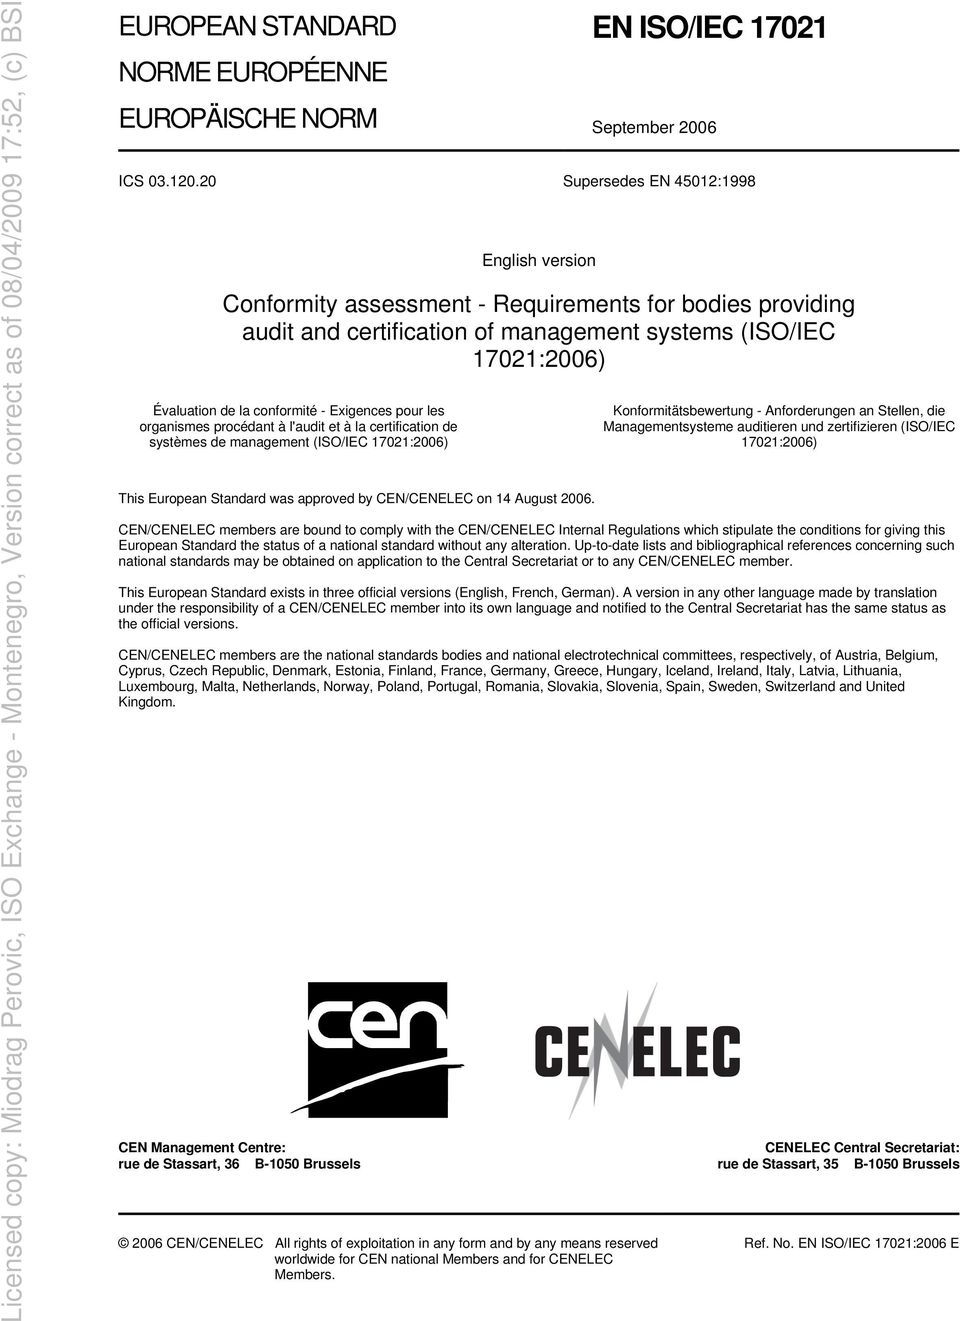 Exigences pour les organismes procédant à l'audit et à la certification de systèmes de management (ISO/IEC 17021:2006) This European Standard was approved by CEN/CENELEC on 14 August 2006.